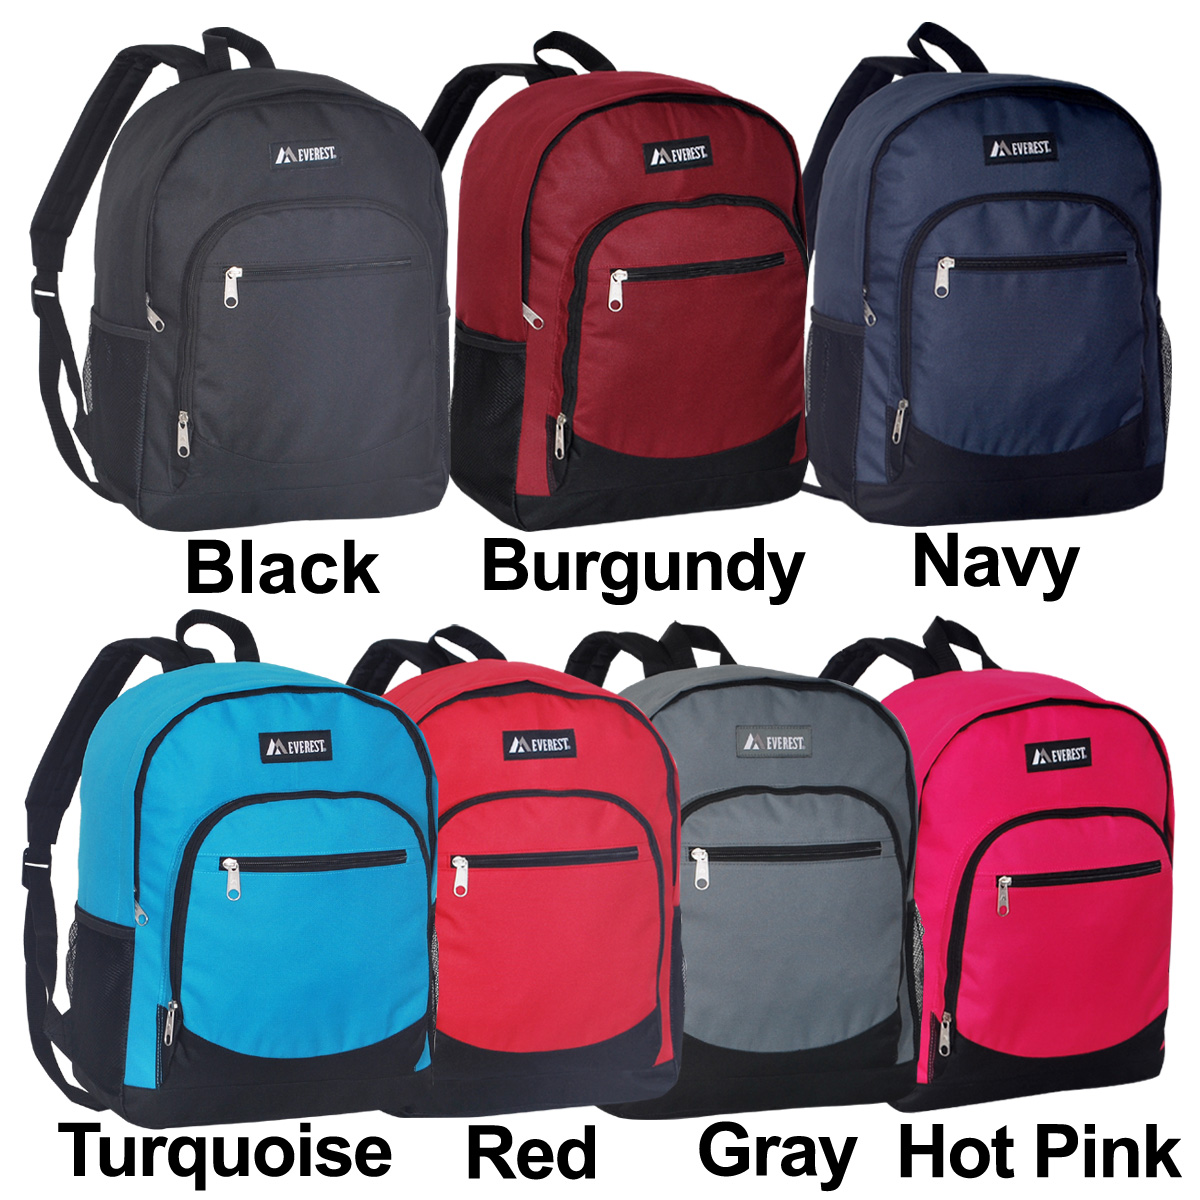 Wholesale Backpacks and School Backpacks - Great Quality